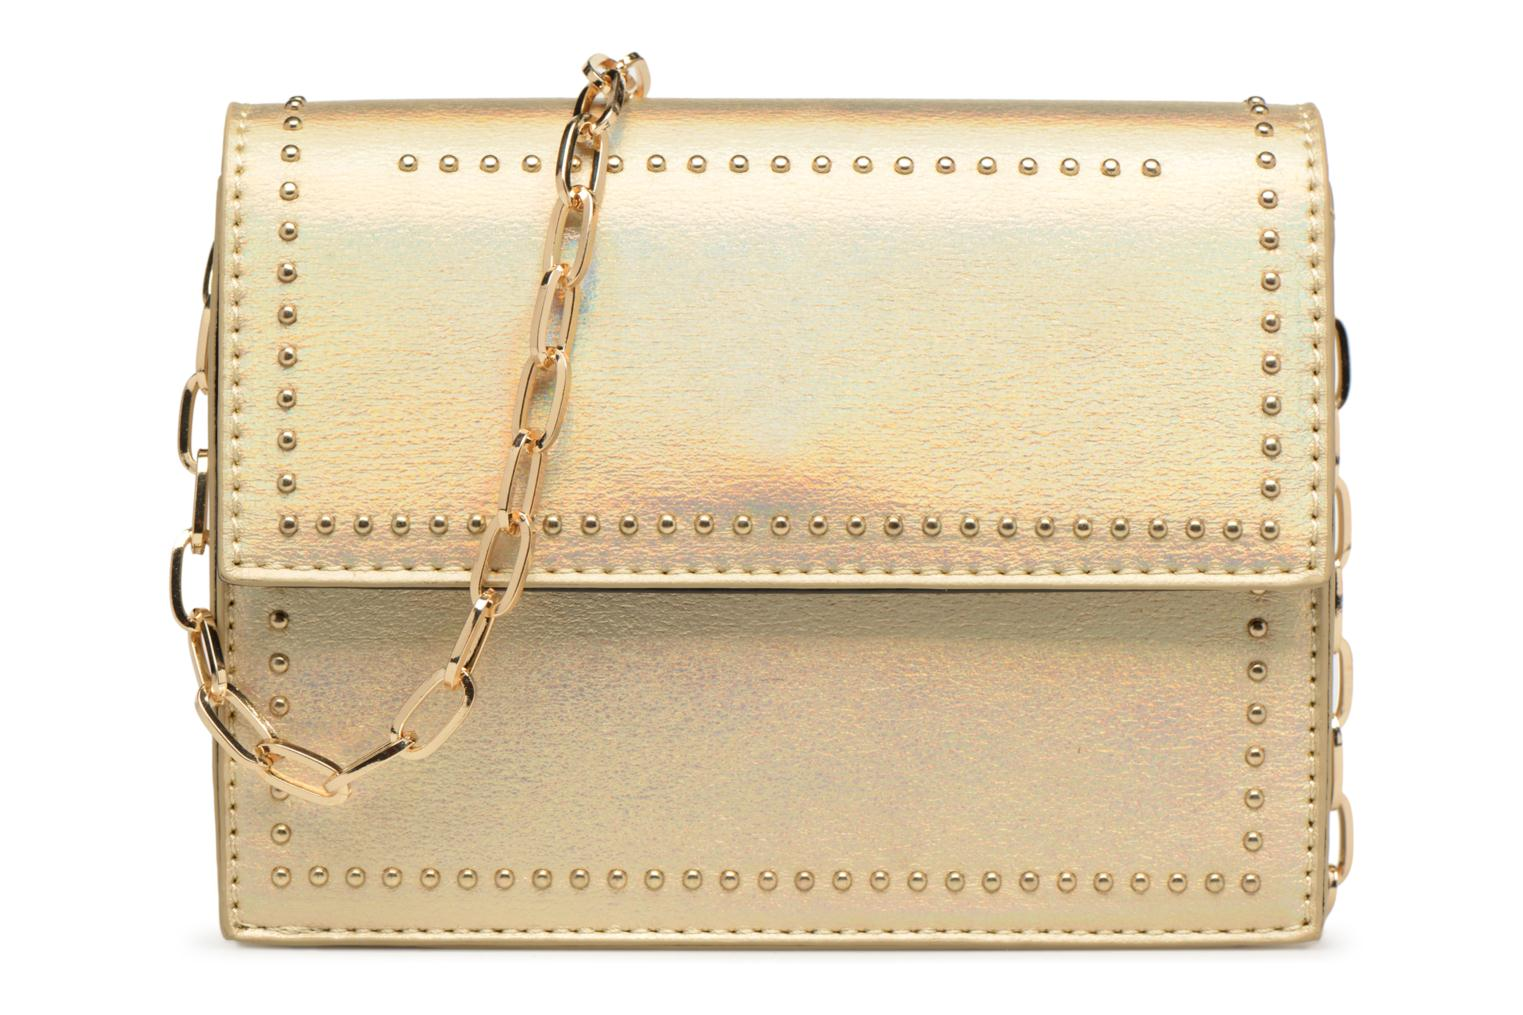 Mettalic Street chainstrap Gold Level crossbody Tzw0Sq